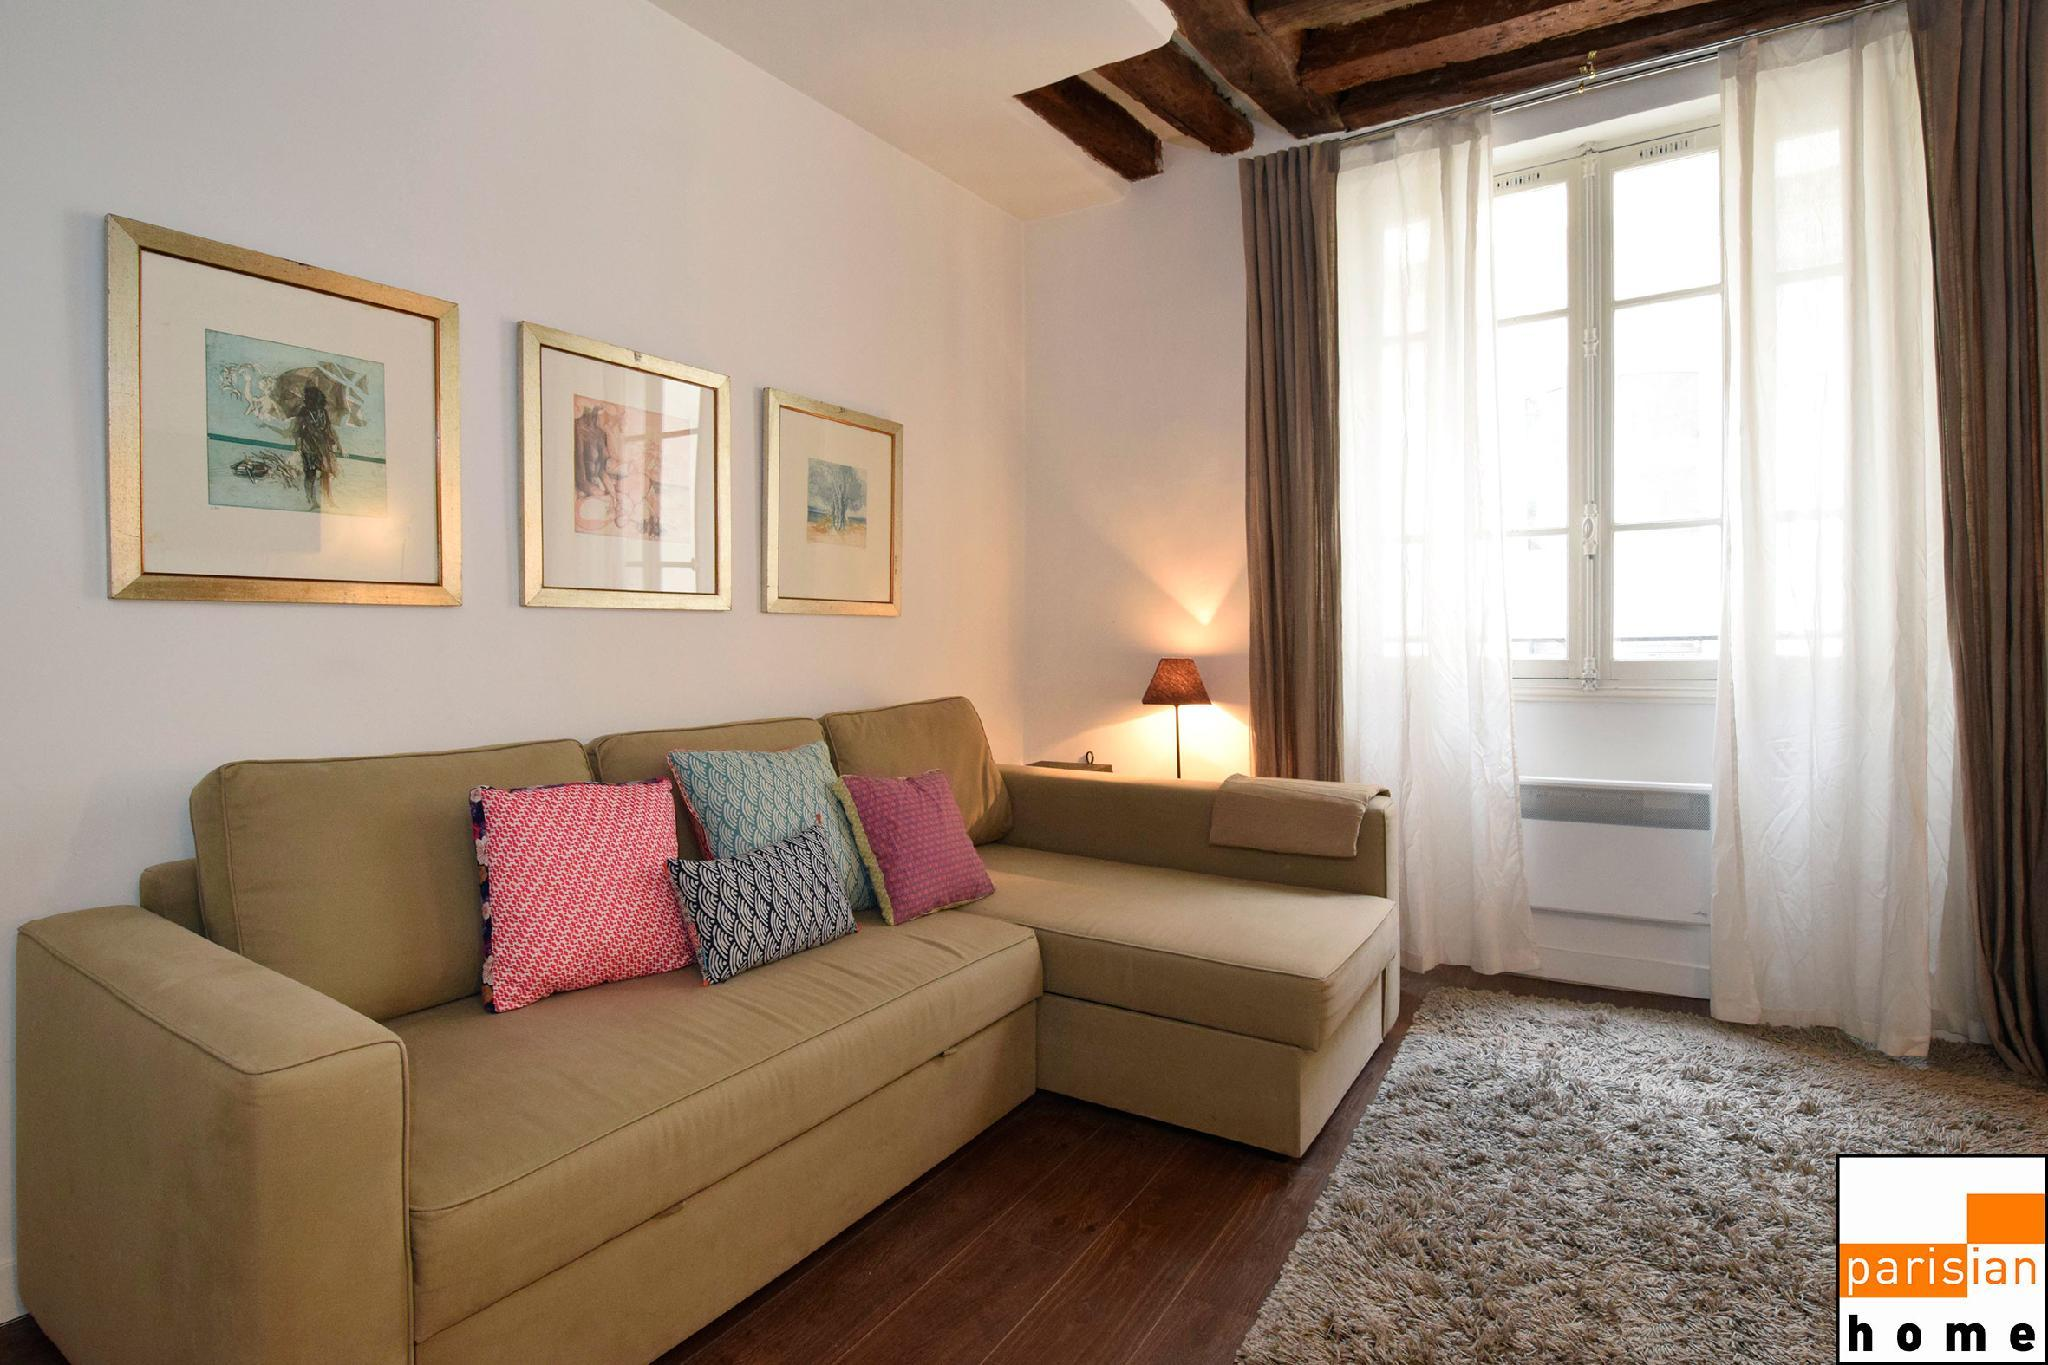 101184 - Cosy and original apartment for 4 people next to the Louvre